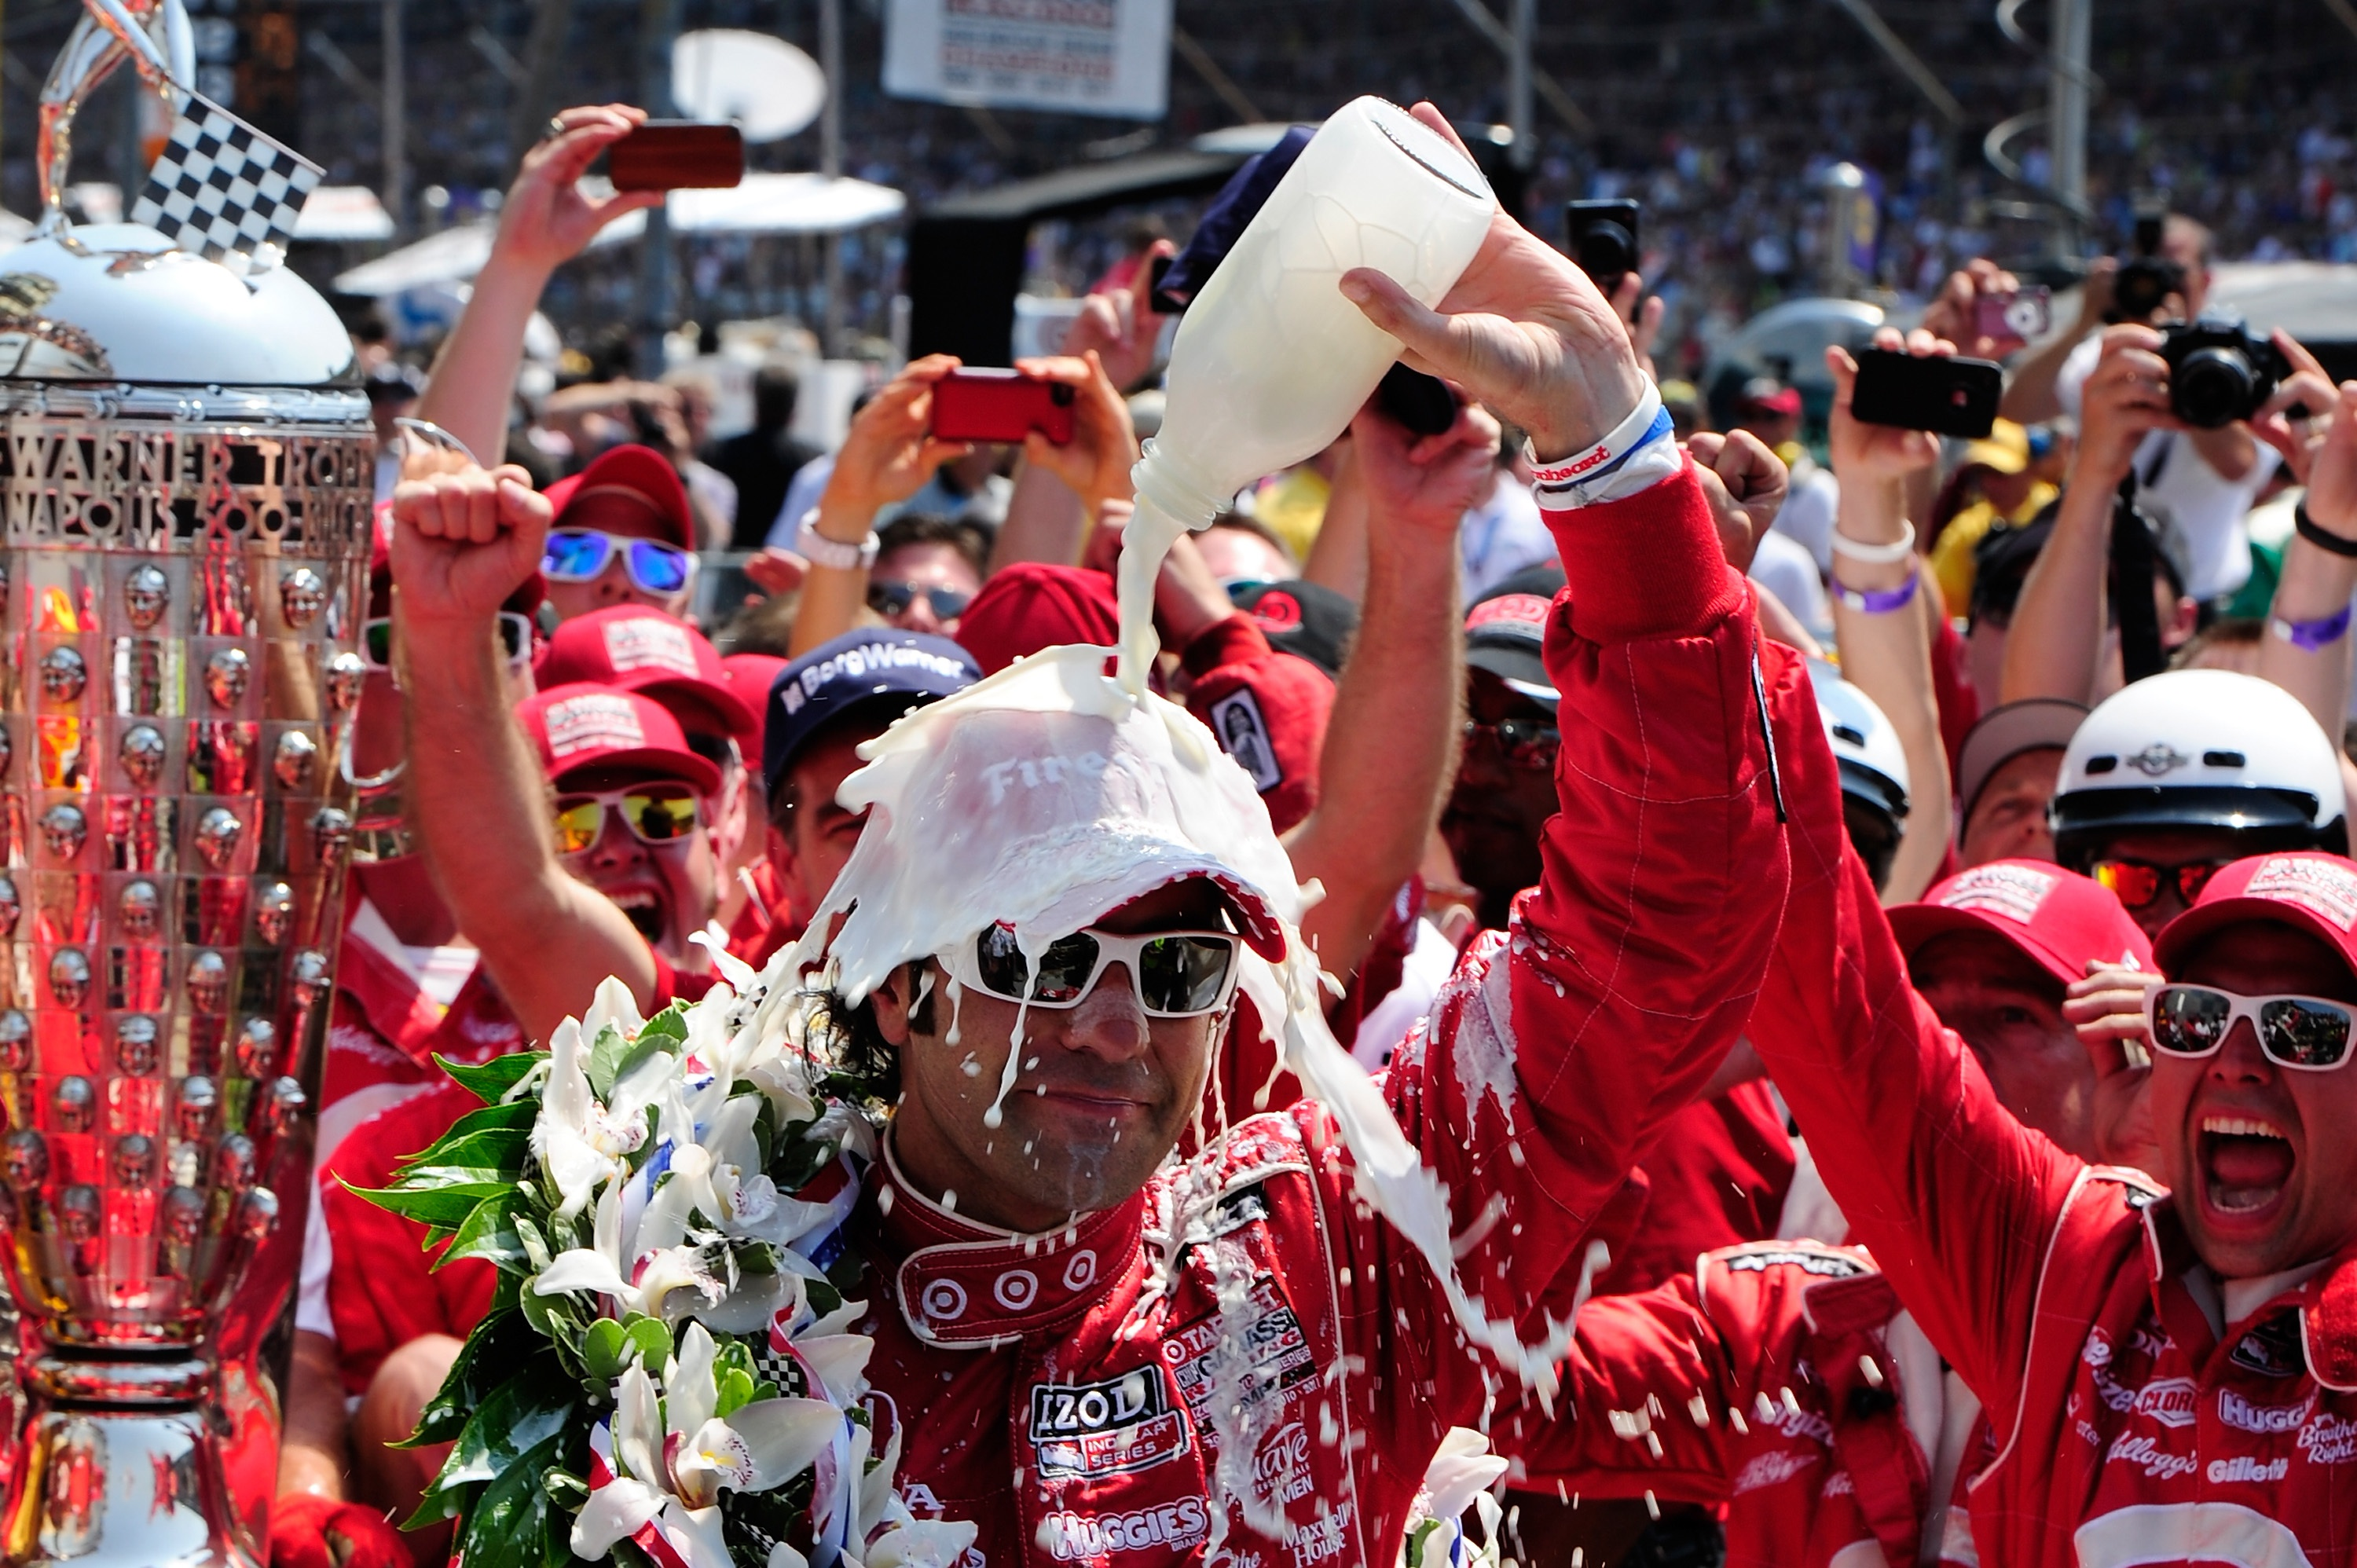 http://gpsportsmanagement.com/wp-content/uploads/2016/07/Dario-Franchitti-Milk-Pour-VL-II.jpg